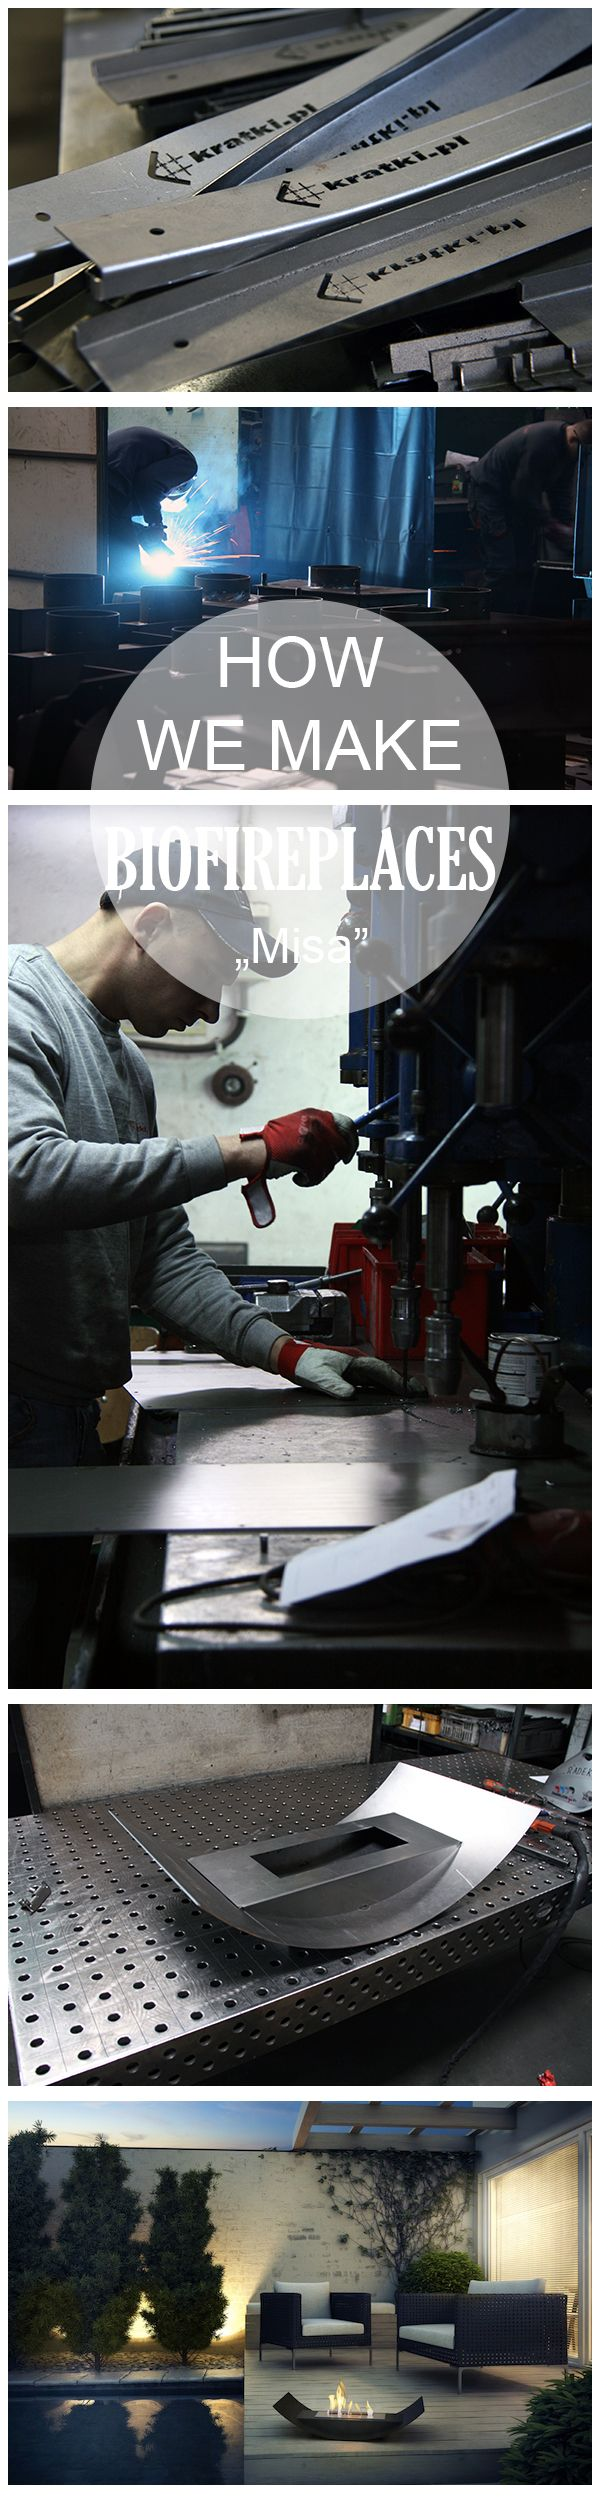 How we produce our bio fireplace? Take a look at production steps. Today we show MISA.